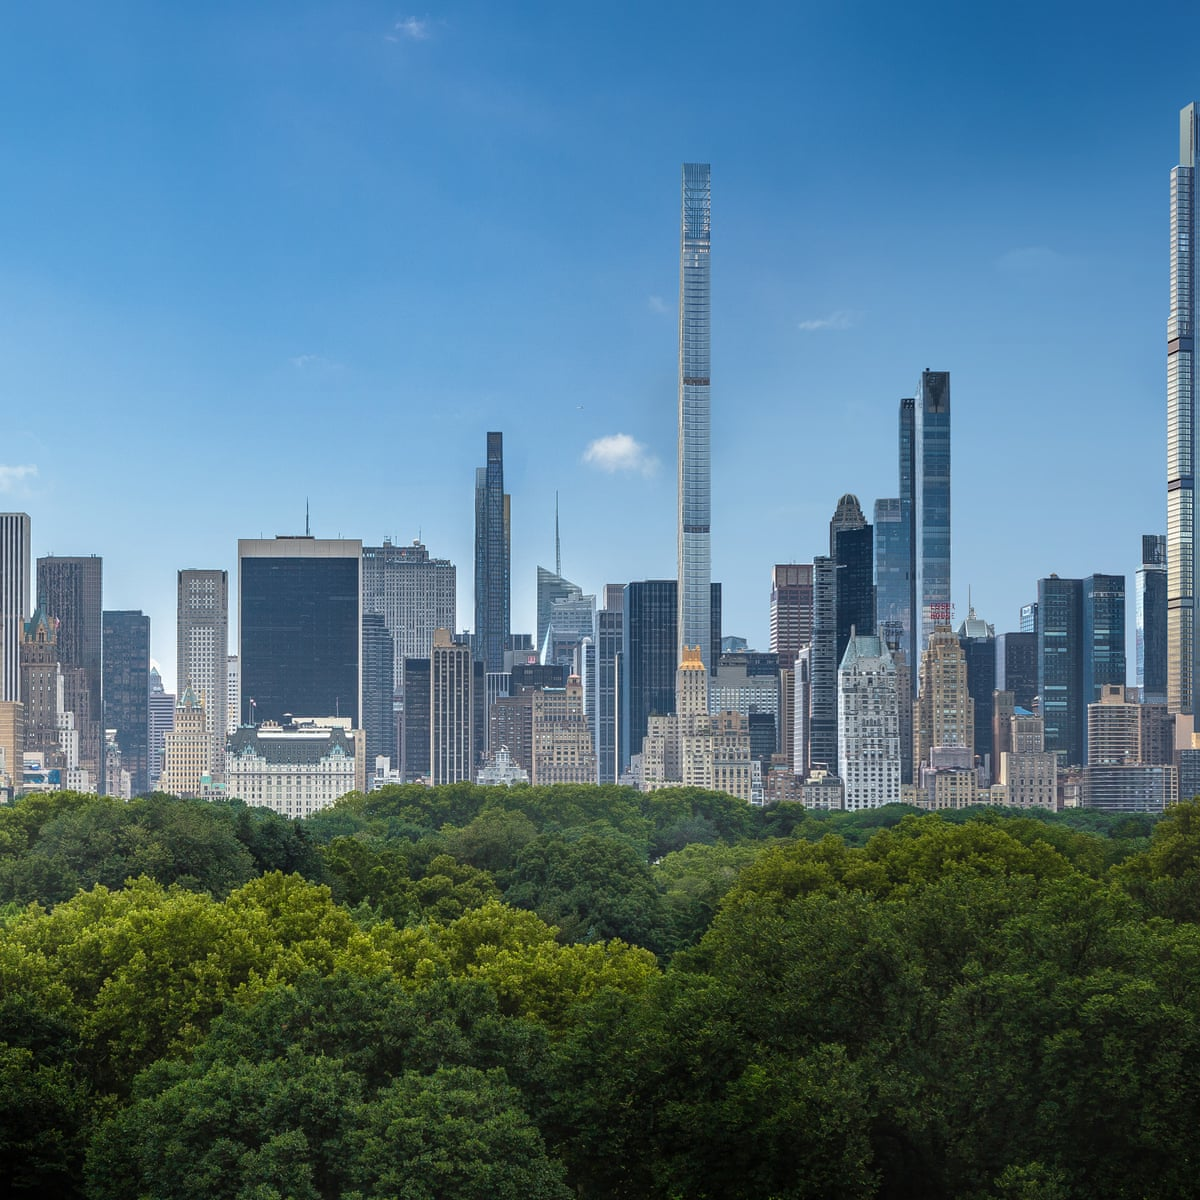 Super Tall Super Skinny Super Expensive The Pencil Towers Of New York S Super Rich Cities The Guardian